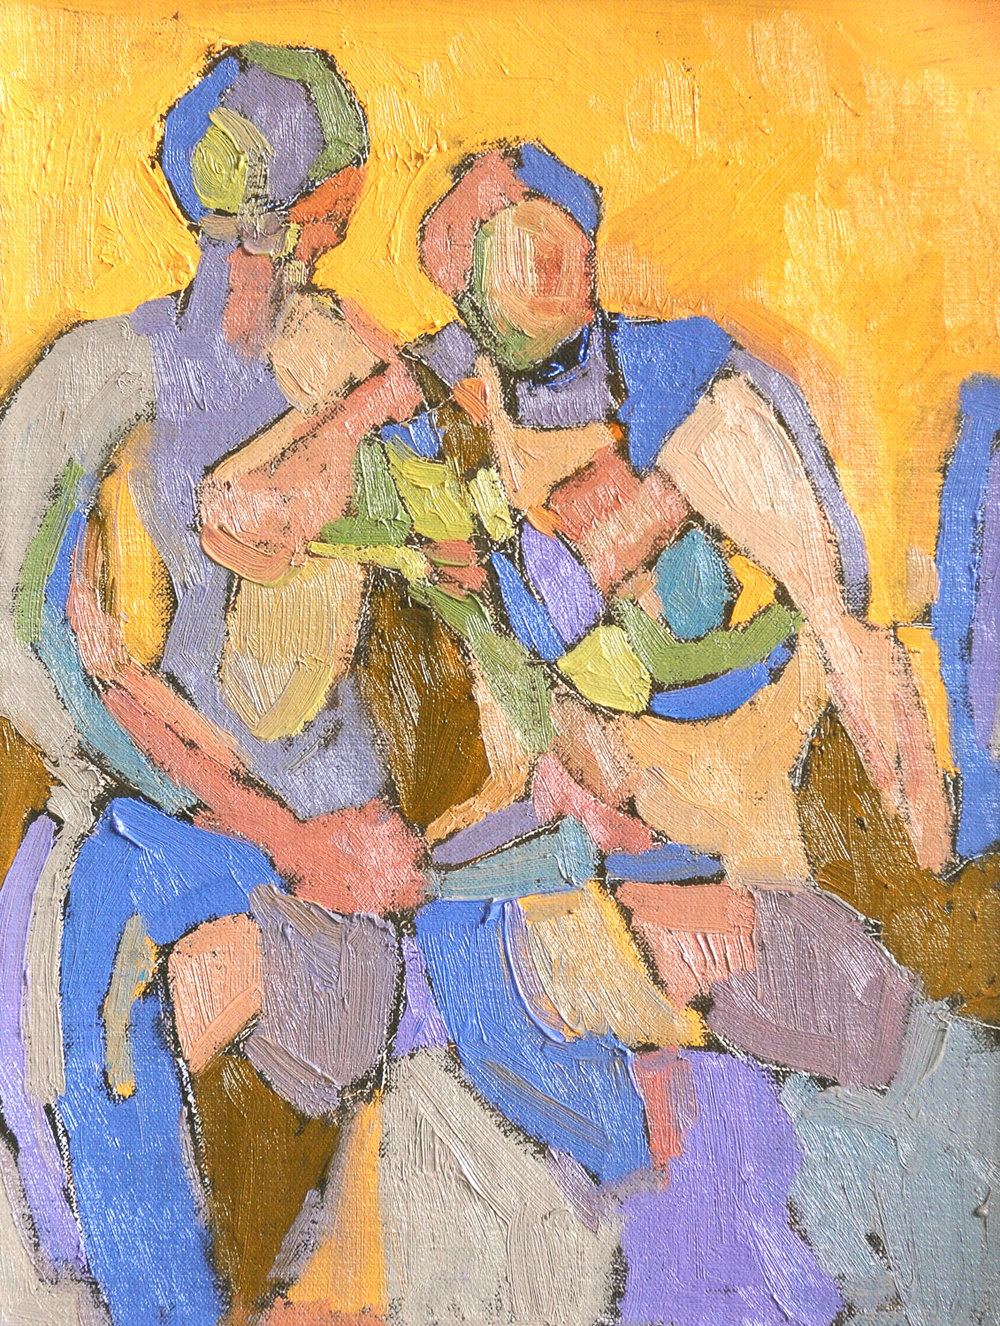 Figures in Orange | Oil on Canvas | 11 x 14""